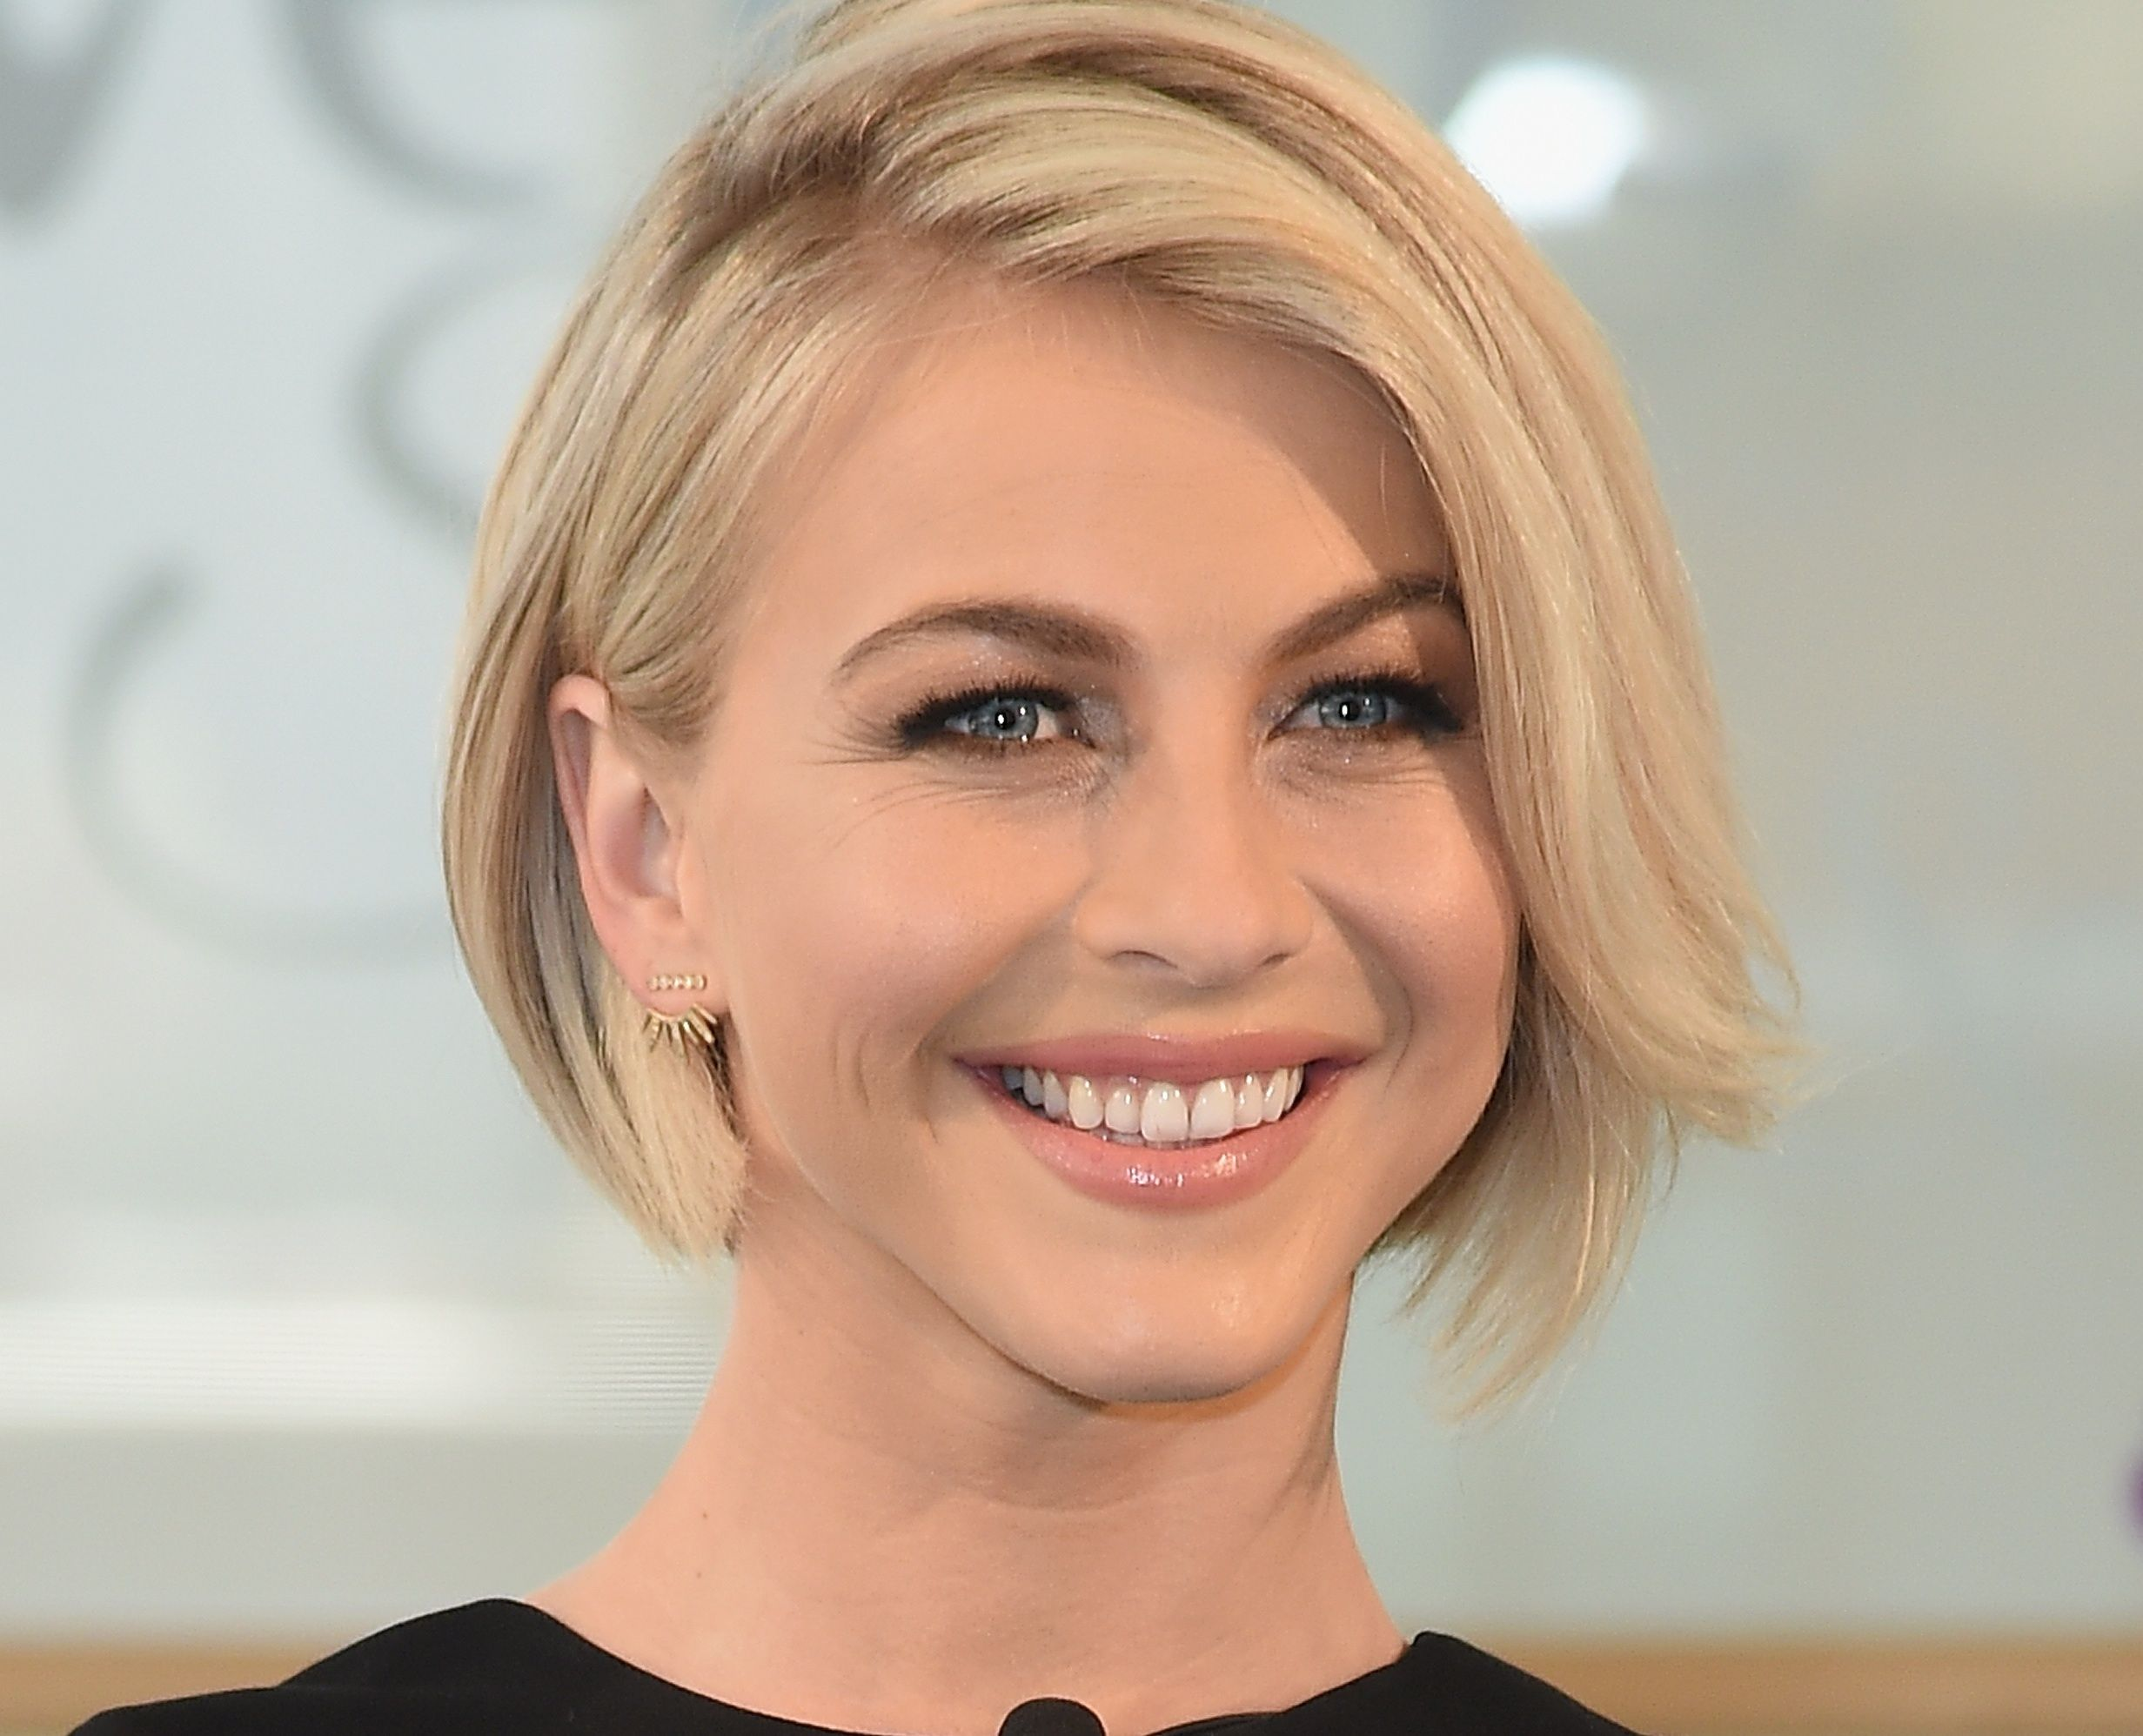 Forum on this topic: Julianne Hough Blunt Medium Straight Hairstyle, julianne-hough-blunt-medium-straight-hairstyle/